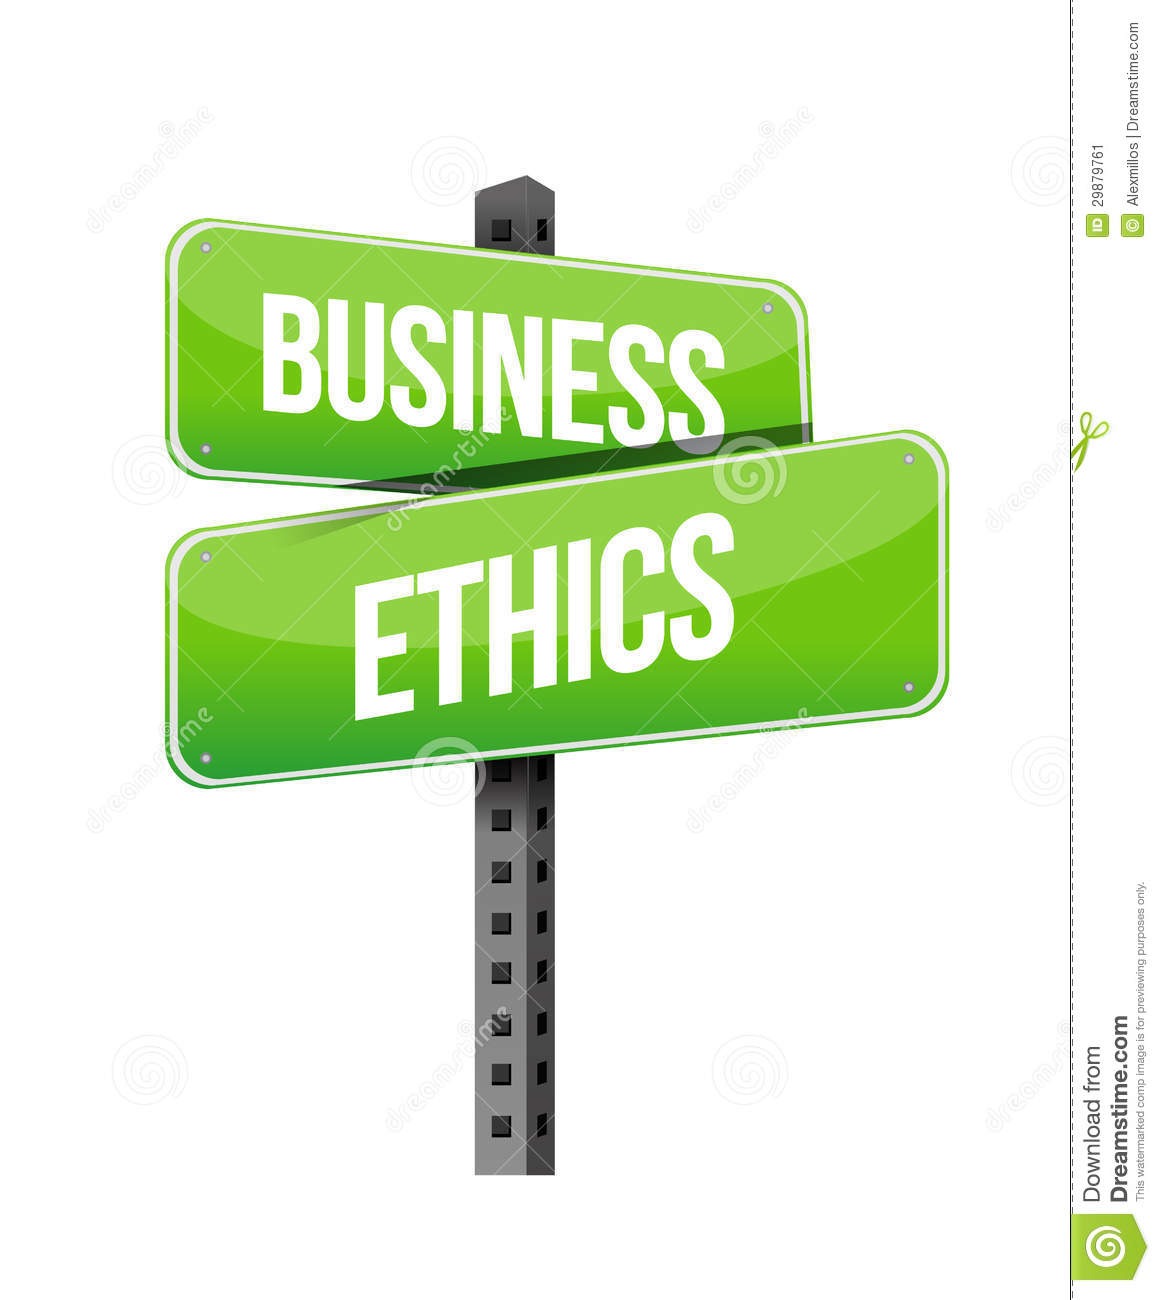 Ethical Practices in the Cosmetics Industry